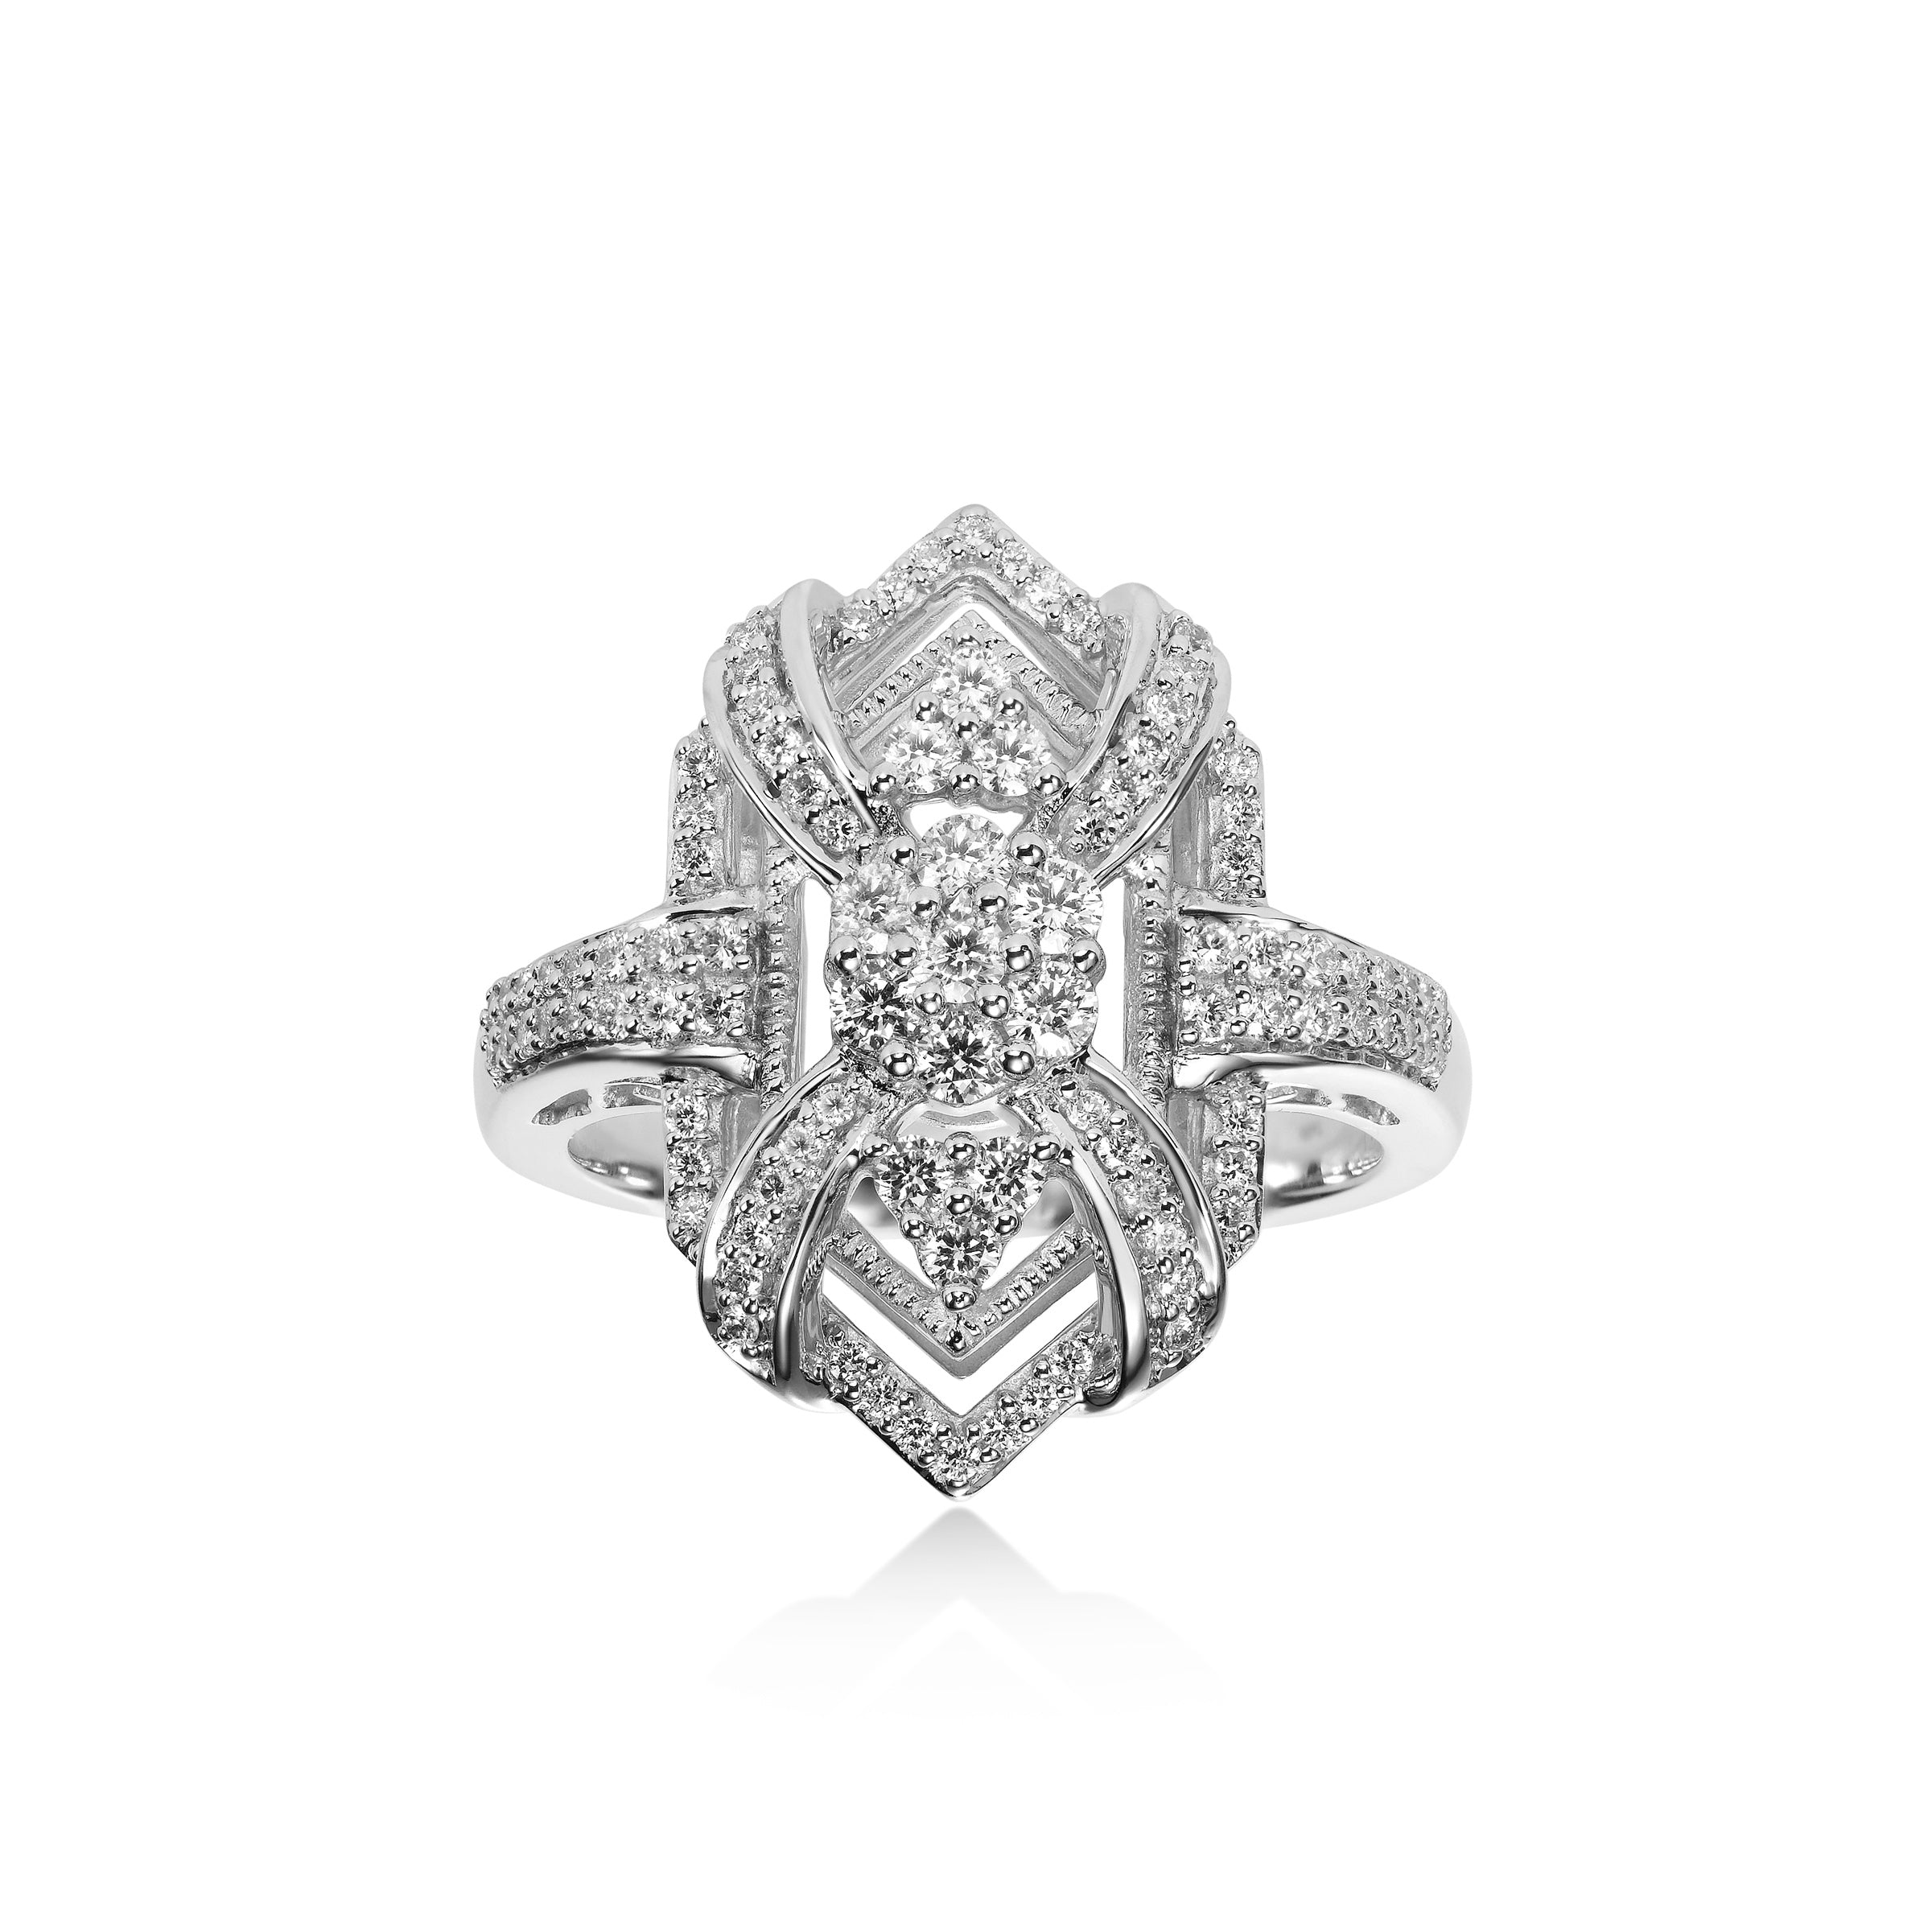 Vintage Style Diamond Ring, 14K White Gold